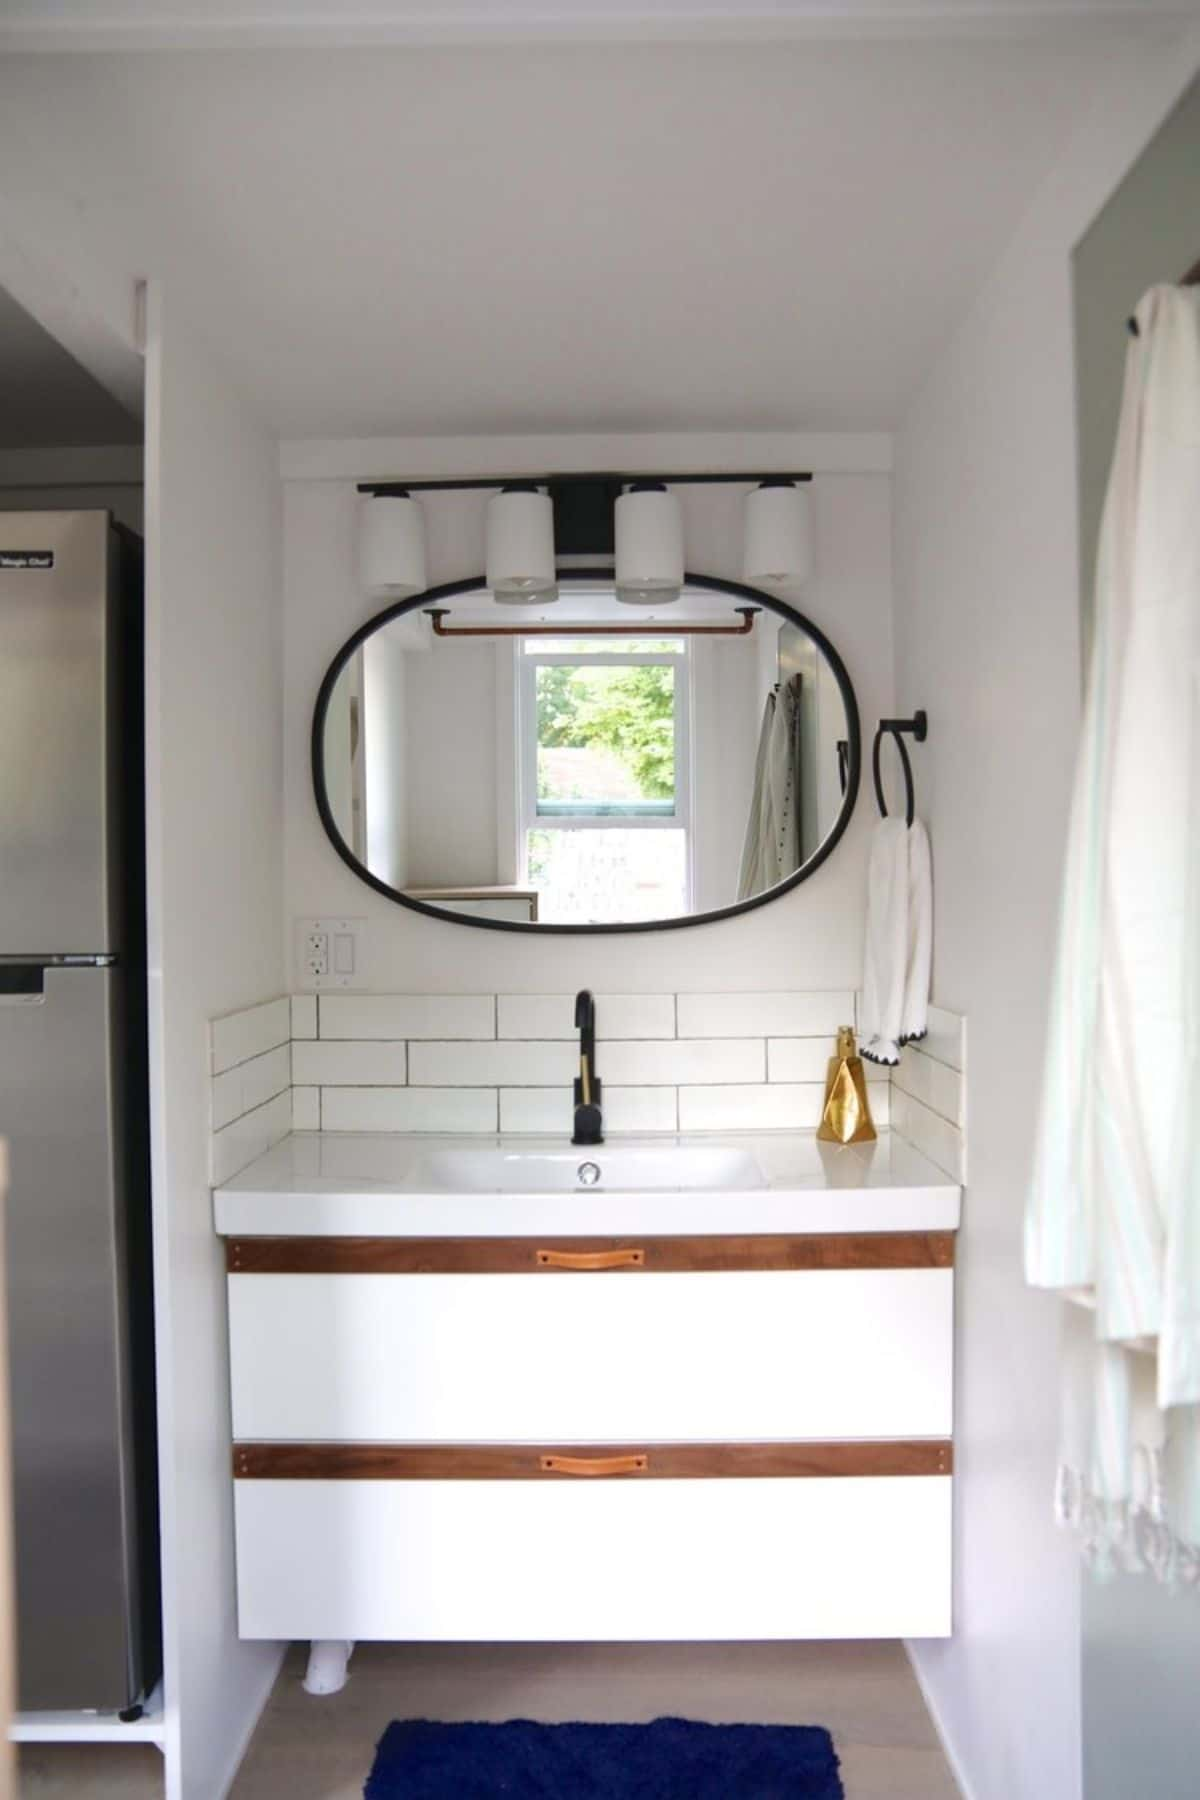 White vanity with wood trim on drawers and oval mirror above